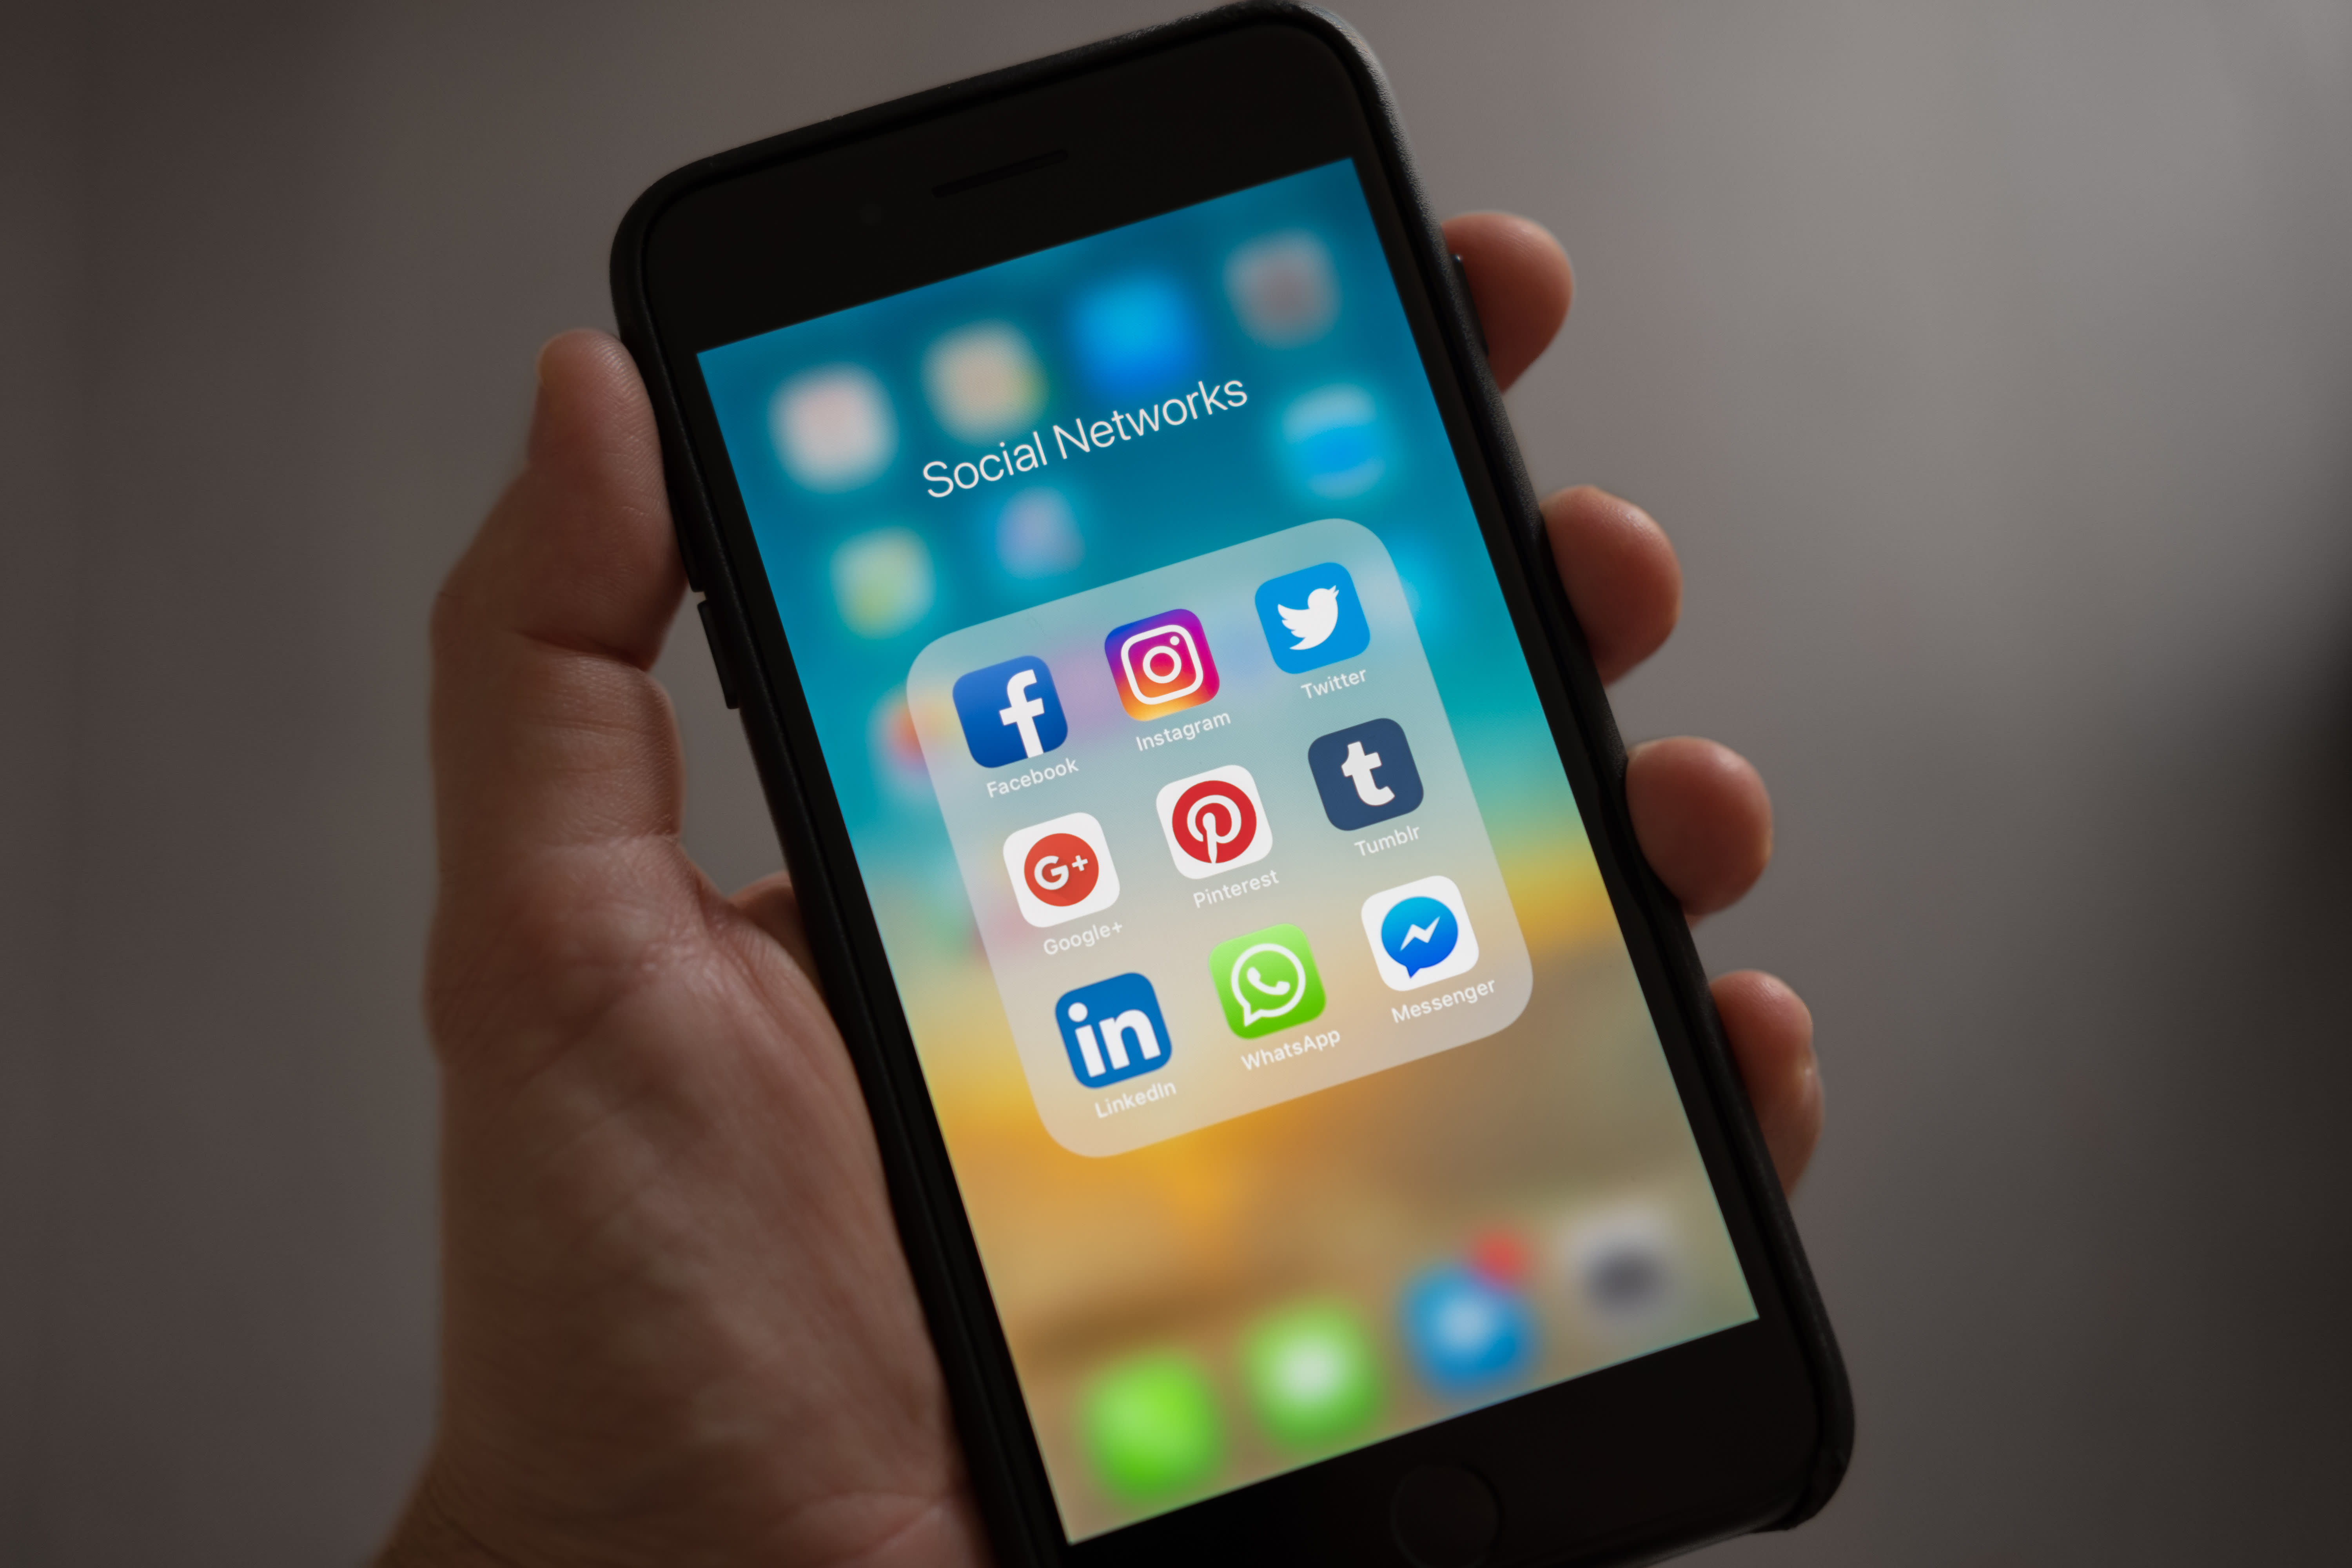 How to organically grow your social media reach in 2018